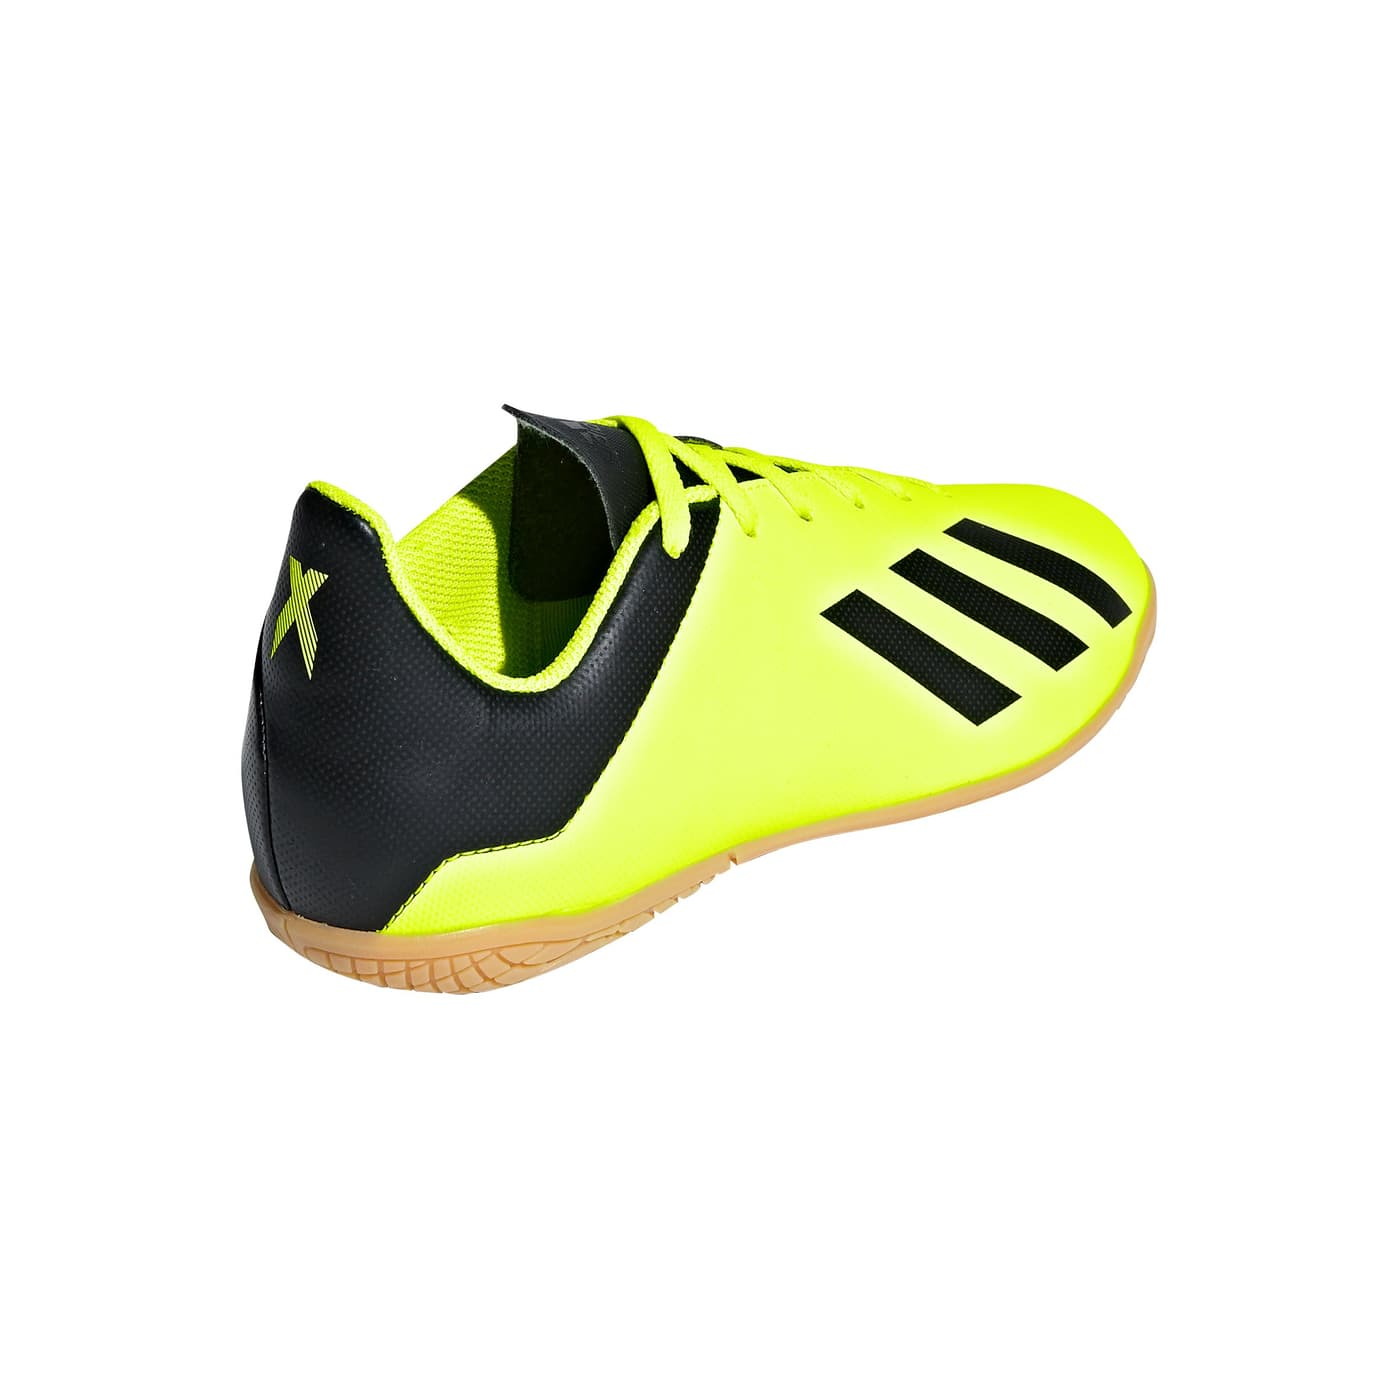 save off b79b4 08b3c ... Adidas X Tango 18.4 IN Chaussures de football pour enfant ...